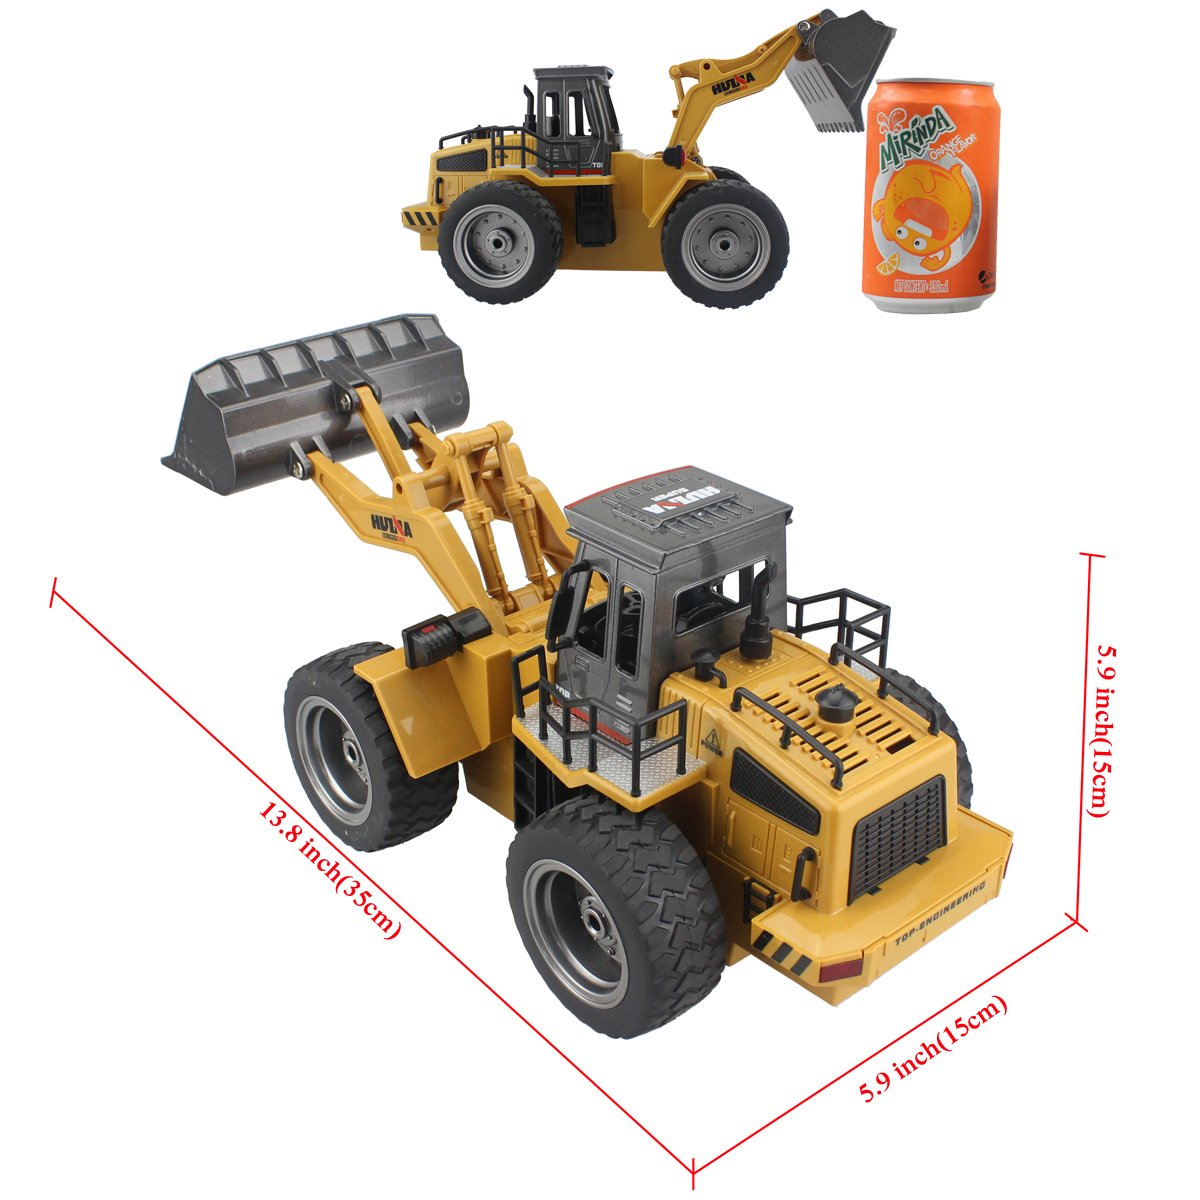 Fistone RC Truck Alloy Shovel Loader Tractor 2.4G Radio Control 4 Wheel Bulldozer 4WD Front Loader Construction Vehicle Electronic Toys Game Hobby Model with Light and Sounds by Fistone (Image #1)